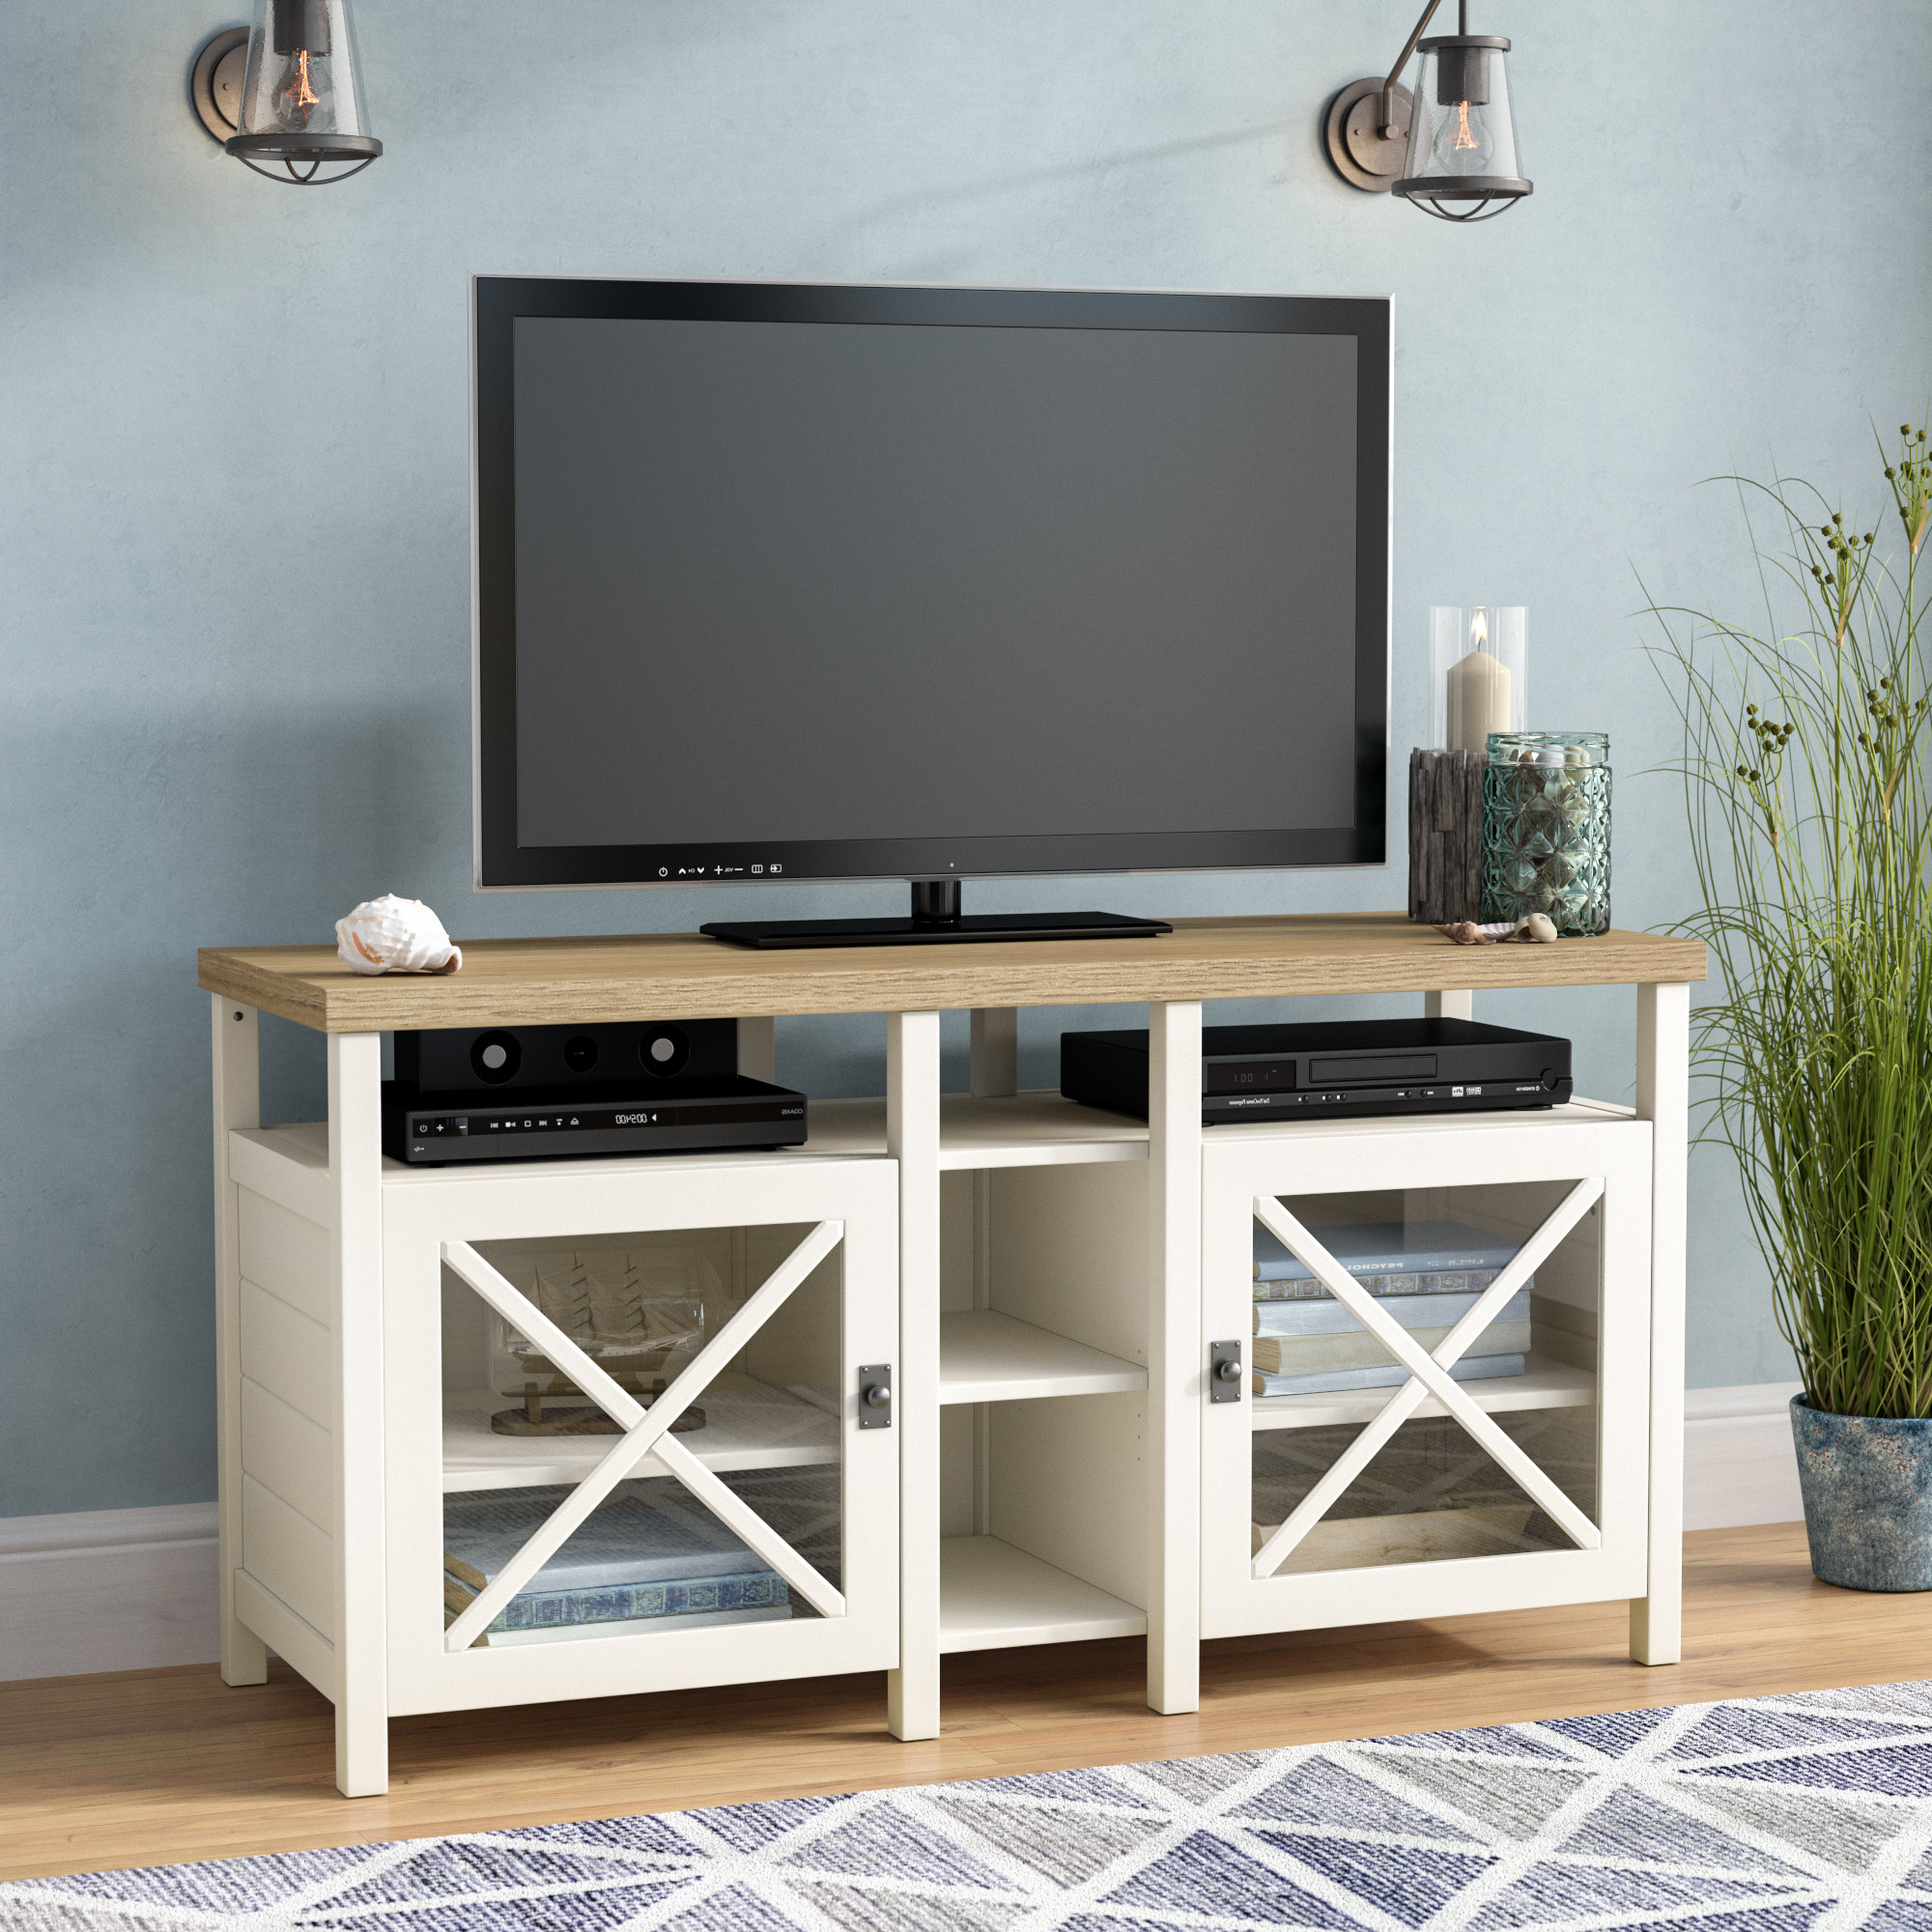 Most Popular 40 49 Inches Tv Stands (View 7 of 20)